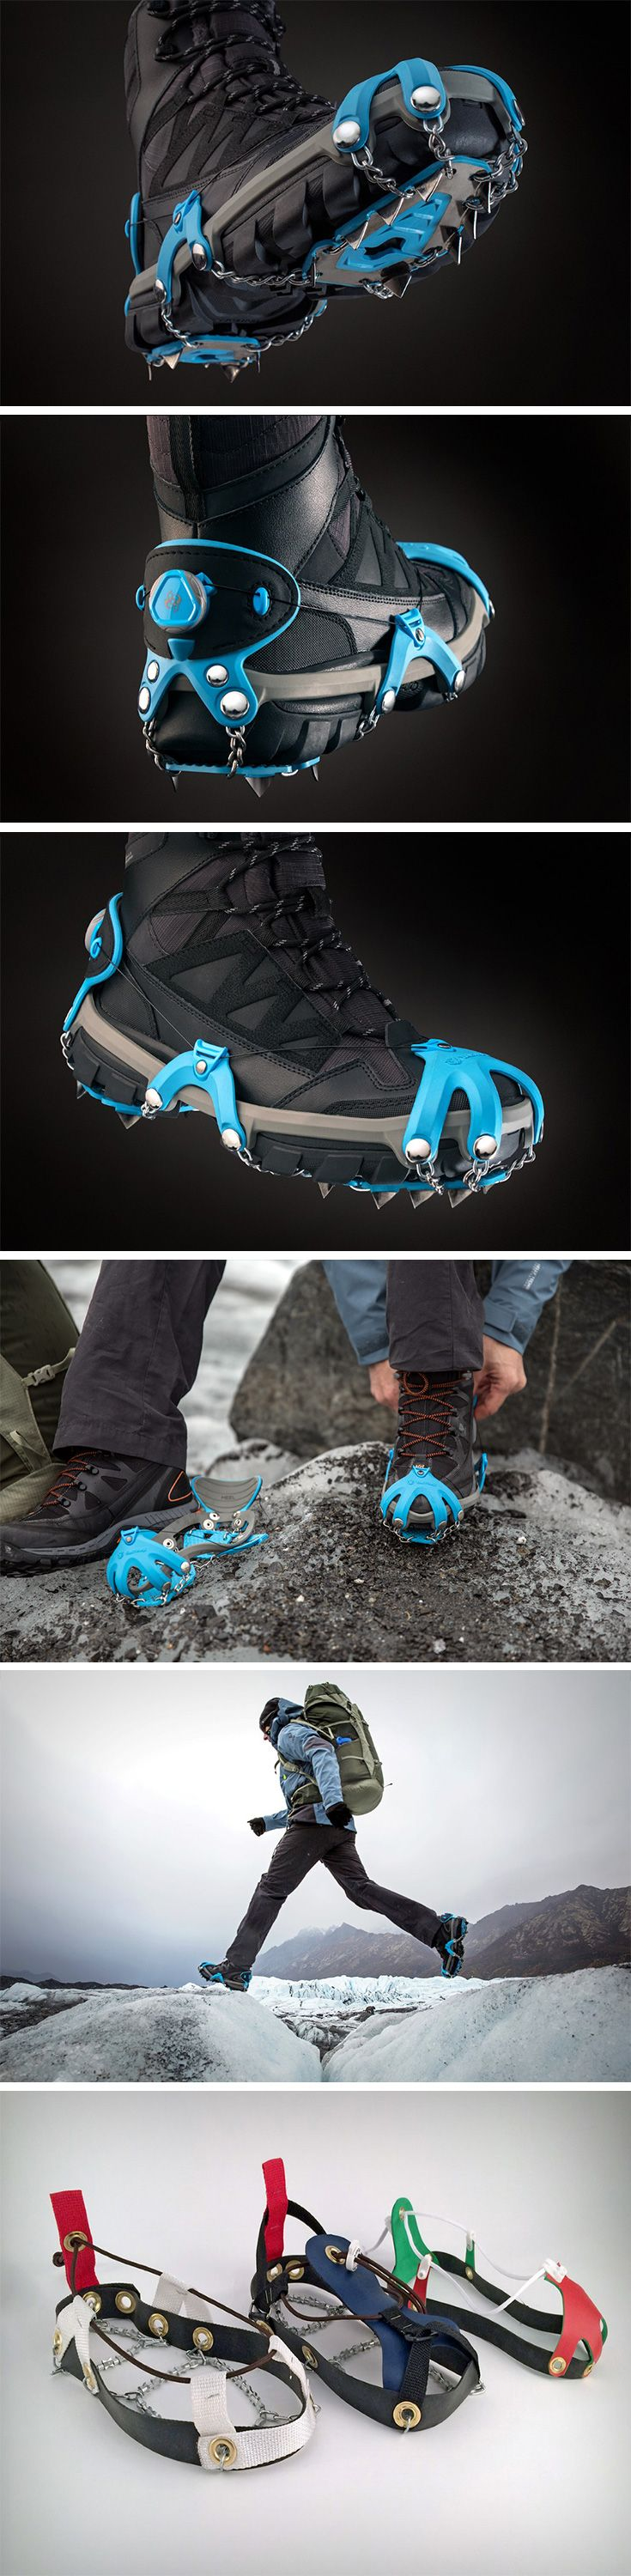 "Designed to be snapped on to your trekking shoes when you need every bit of traction you can get, the Yaktrax Summit looks bold, rugged, and like it can do the job. The Summit straps to any shoe (you buy it according to your shoe size), and secures itself tightly. The chains provide traction, but not as much as the 3/8"" curved sawtooth stainless steel spikes that dig right into the ice or snow, making sure you'll never lose grip. BUY NOW!"